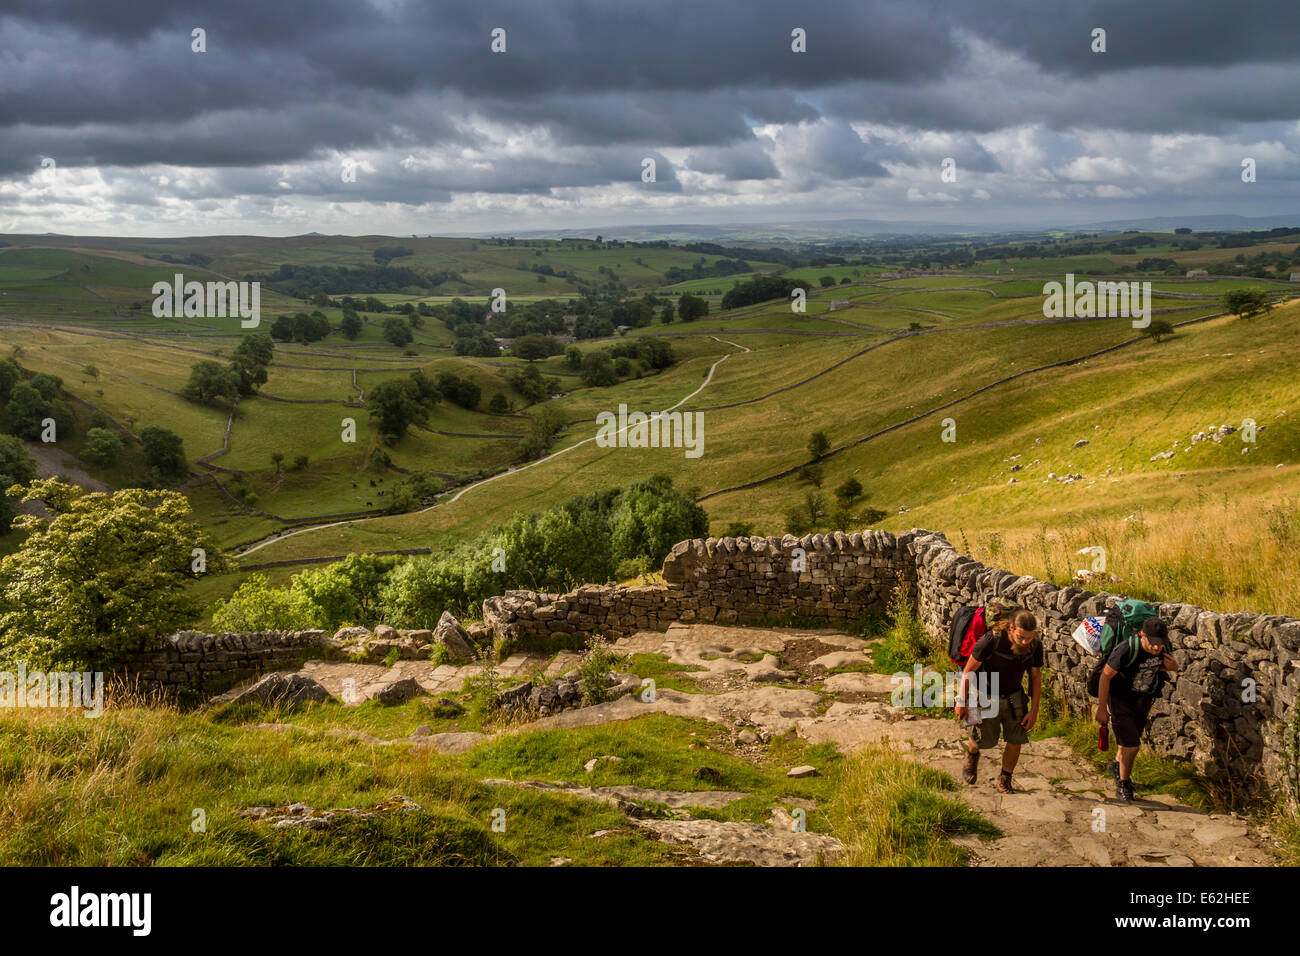 Backpackers ascending the beautiful path by Malham Cove, Yorkshire Dales - Stock Image